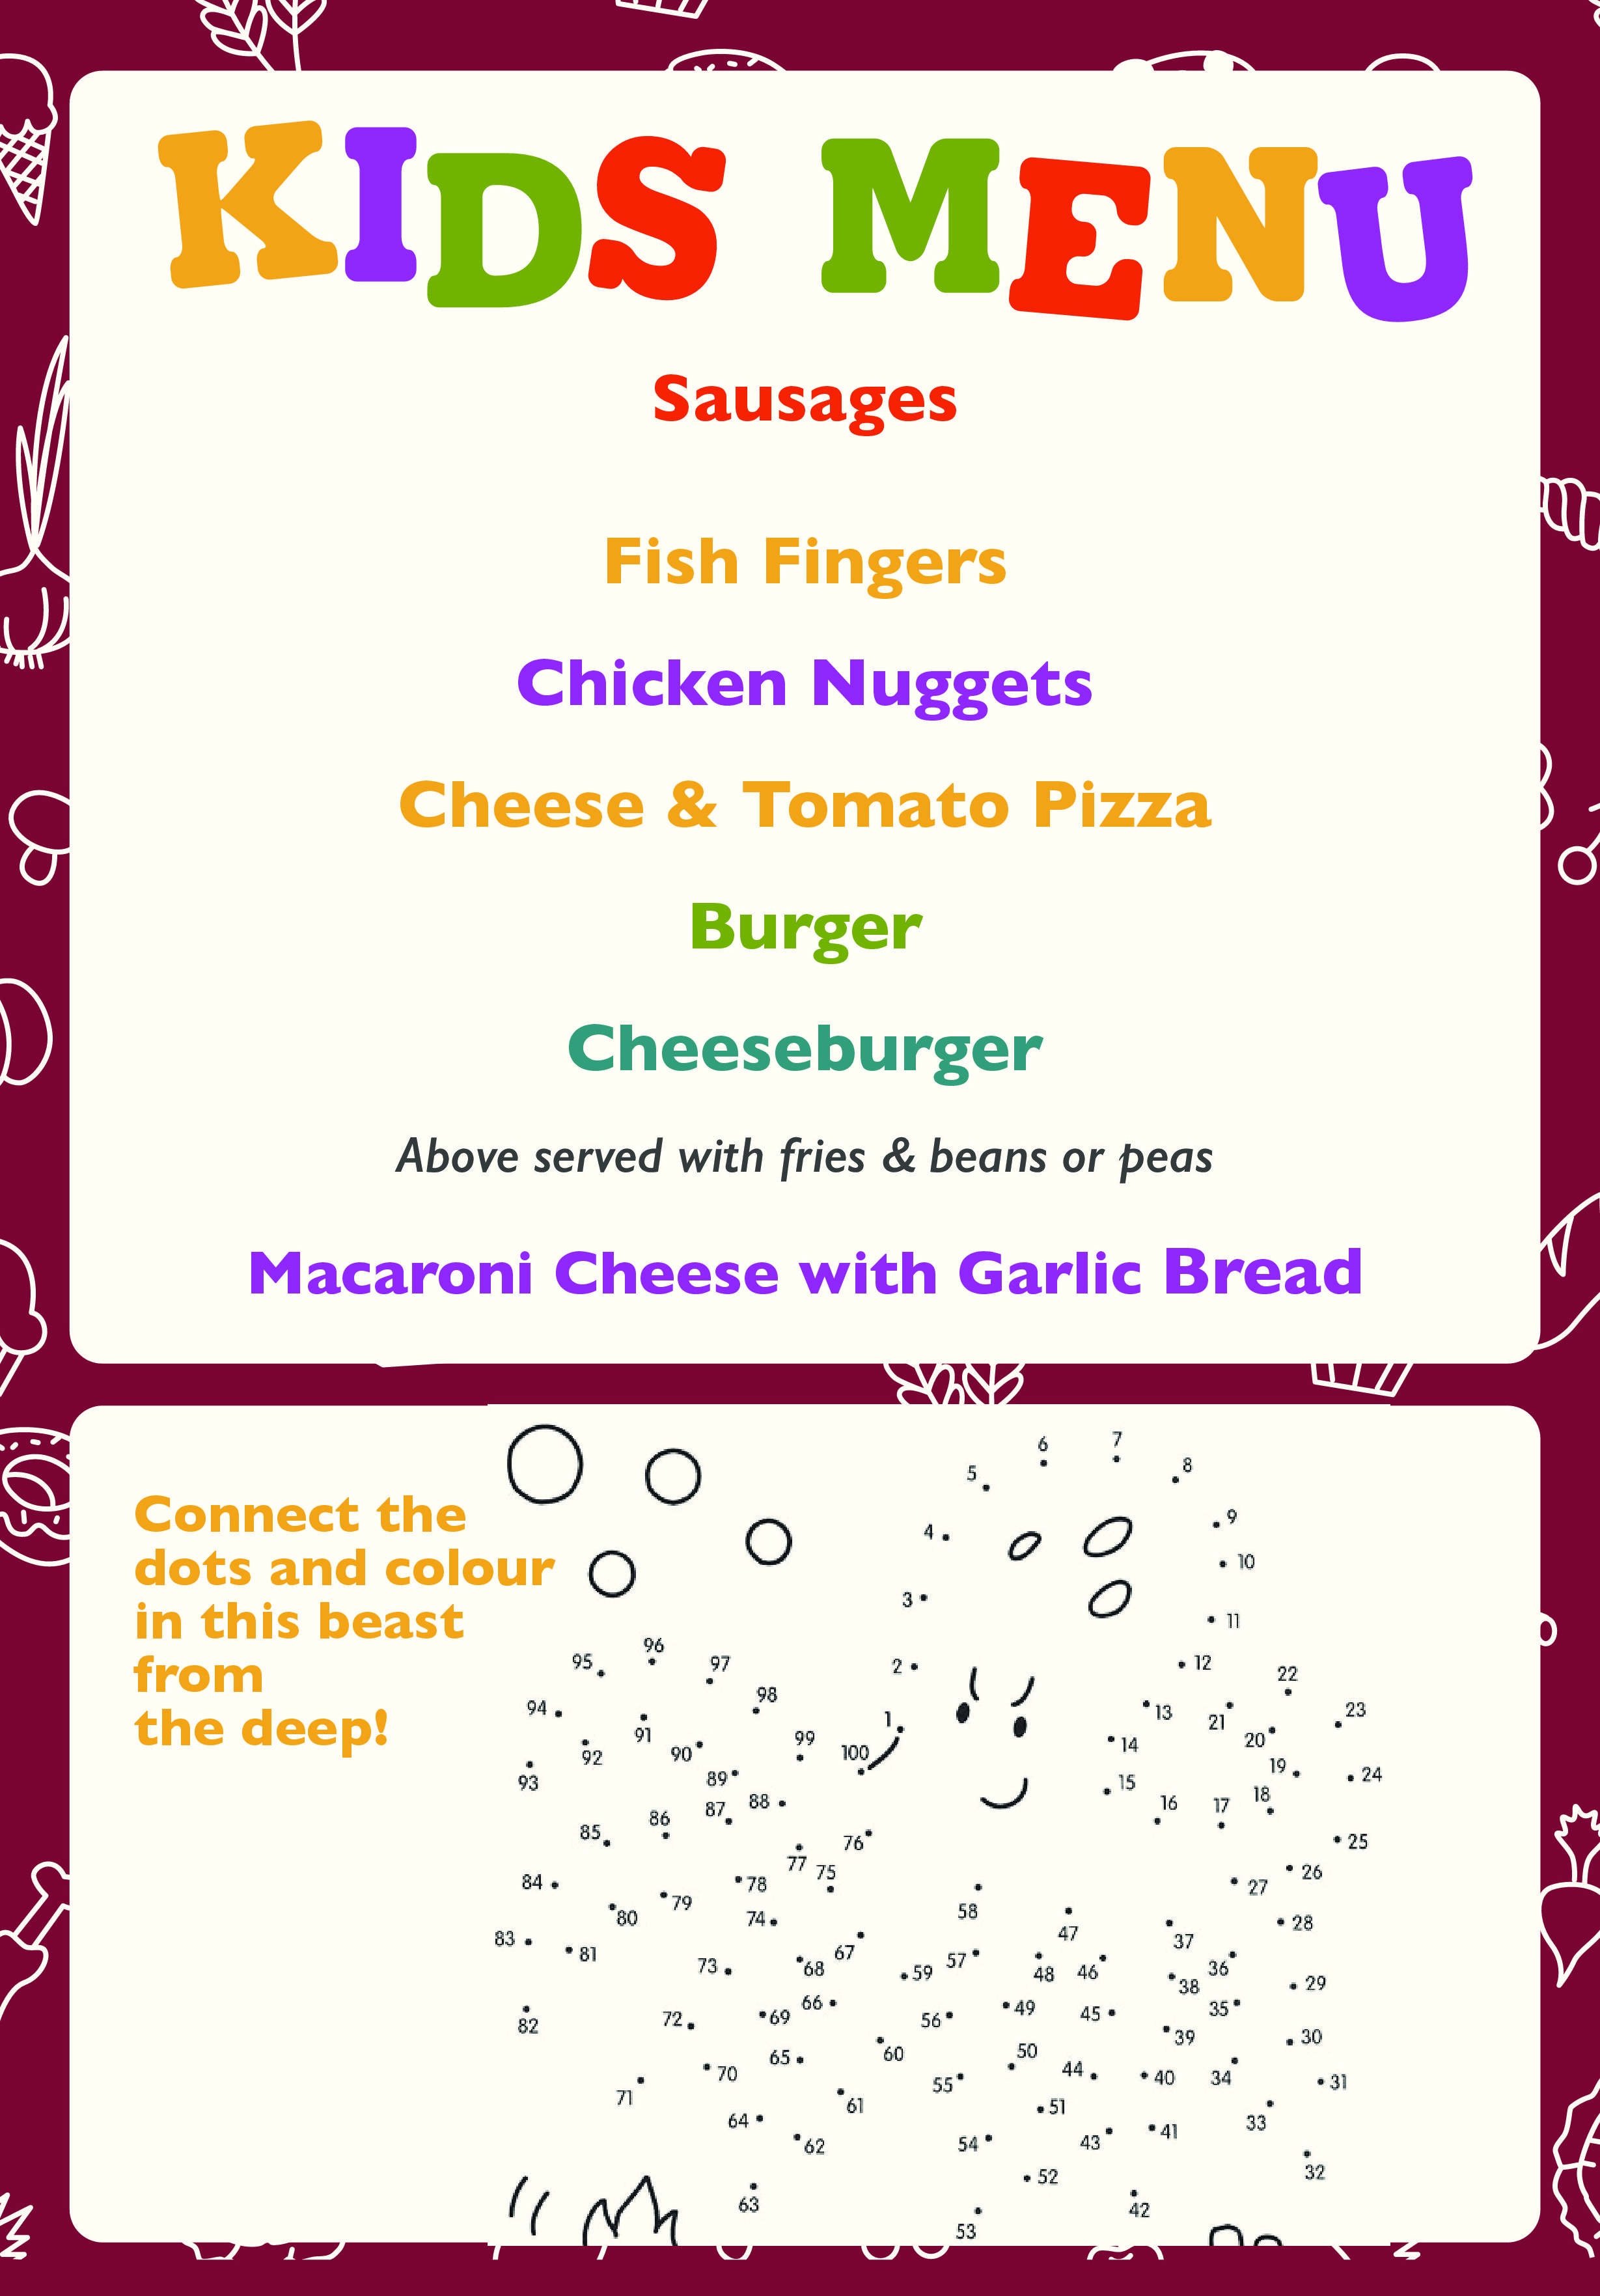 Kids childrens menu pub food